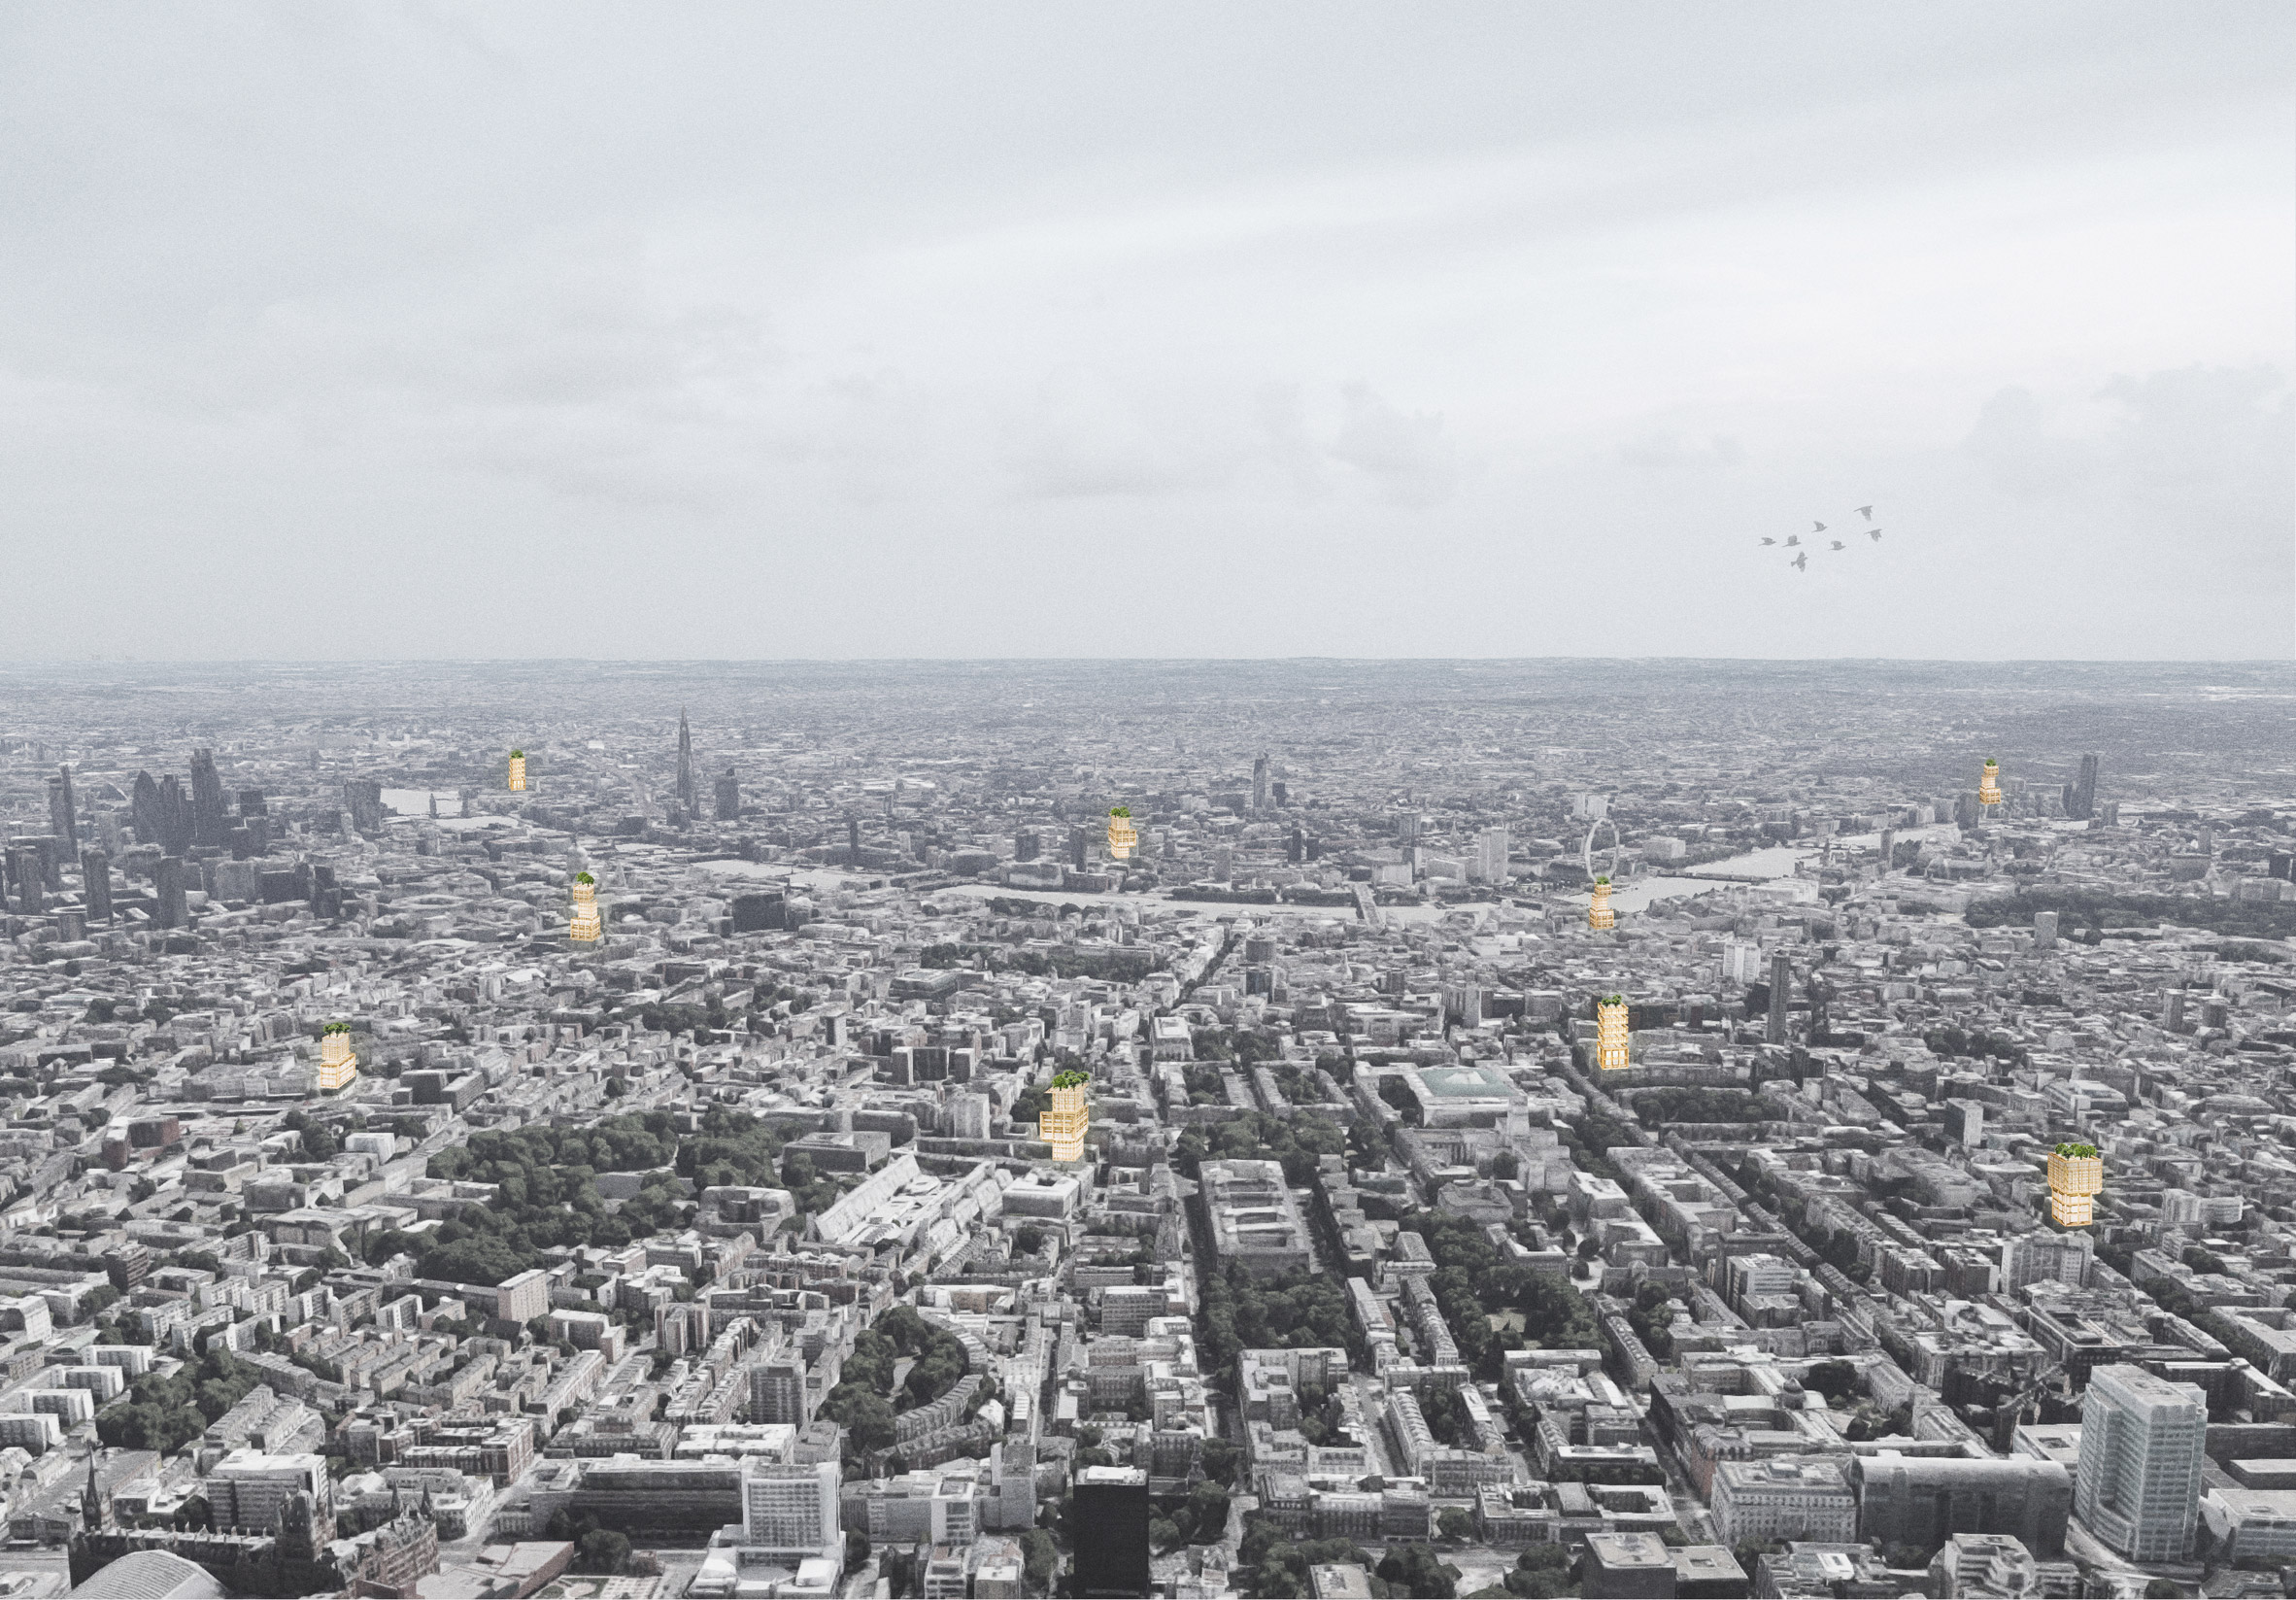 RCA Architecture graduate proposes affordable housing in Vertical Open City project